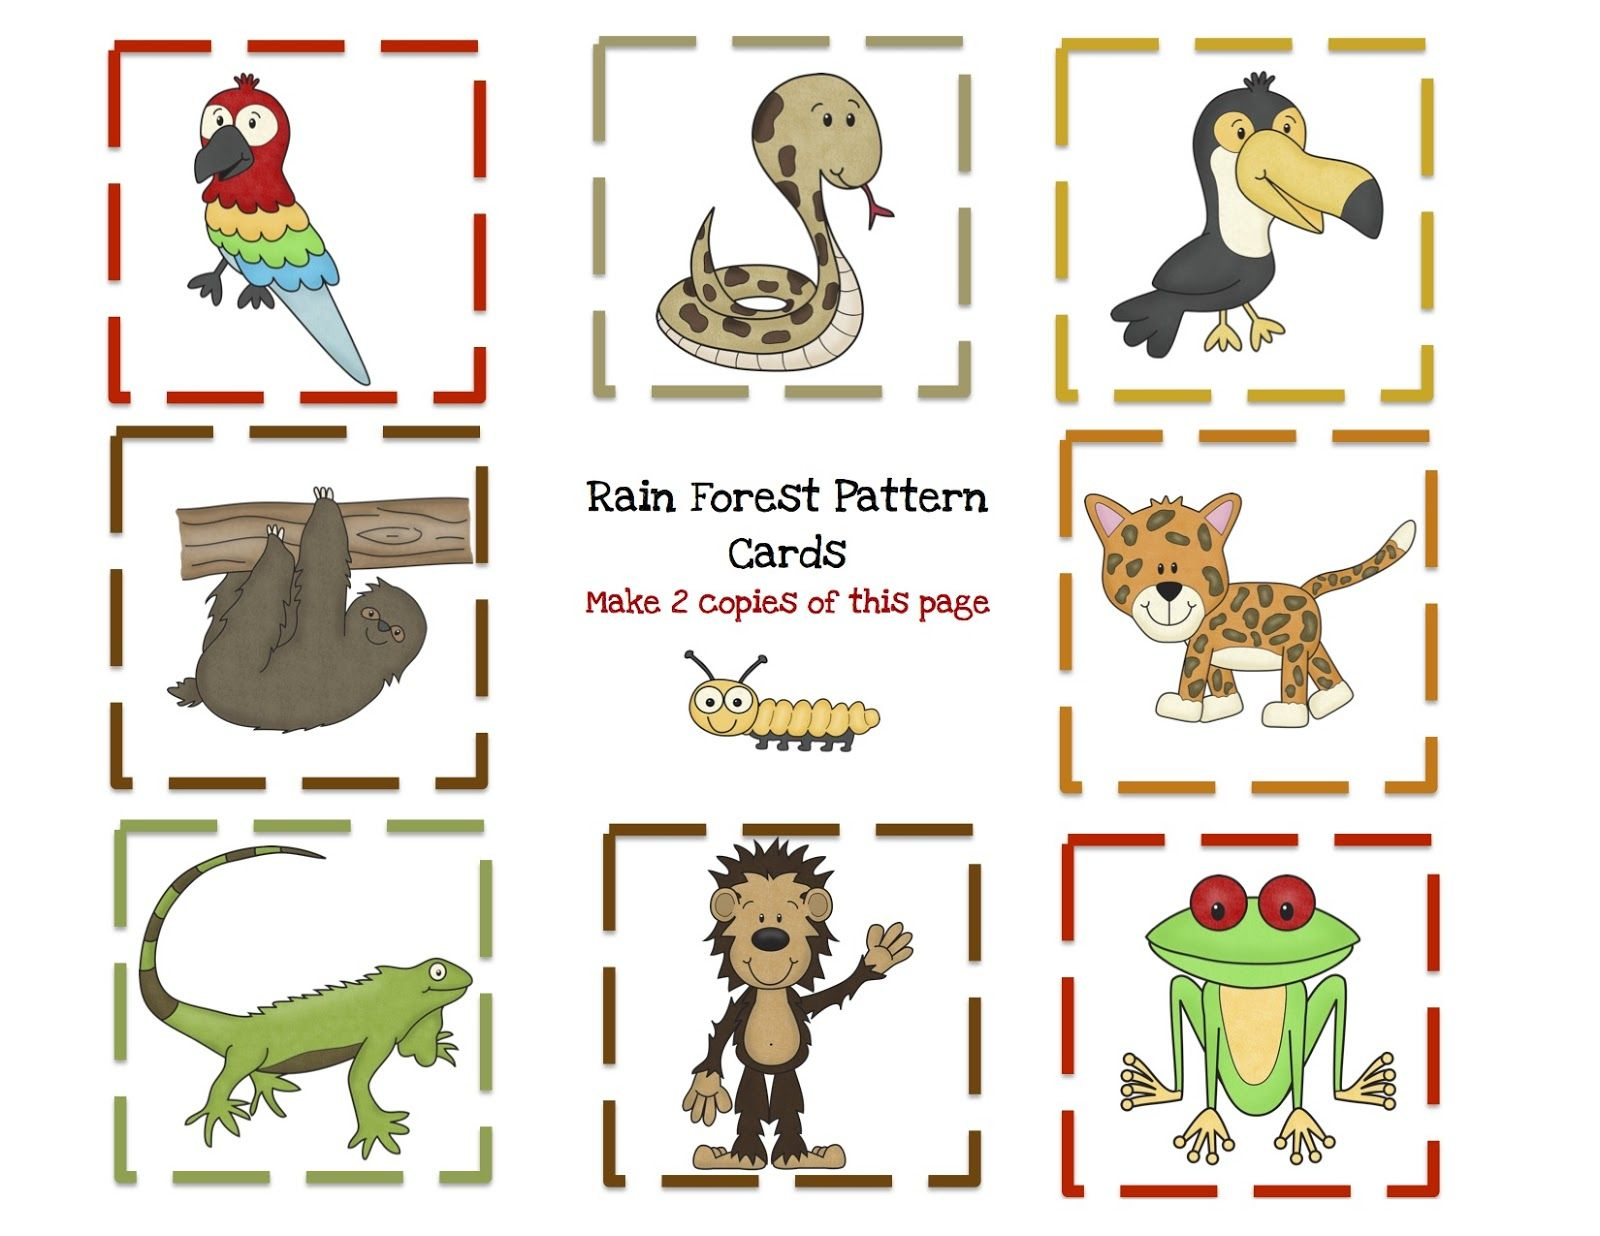 Preschool Printables: Rain Forest Animal Printable | Rain Forest | Rainforest Printable Worksheets